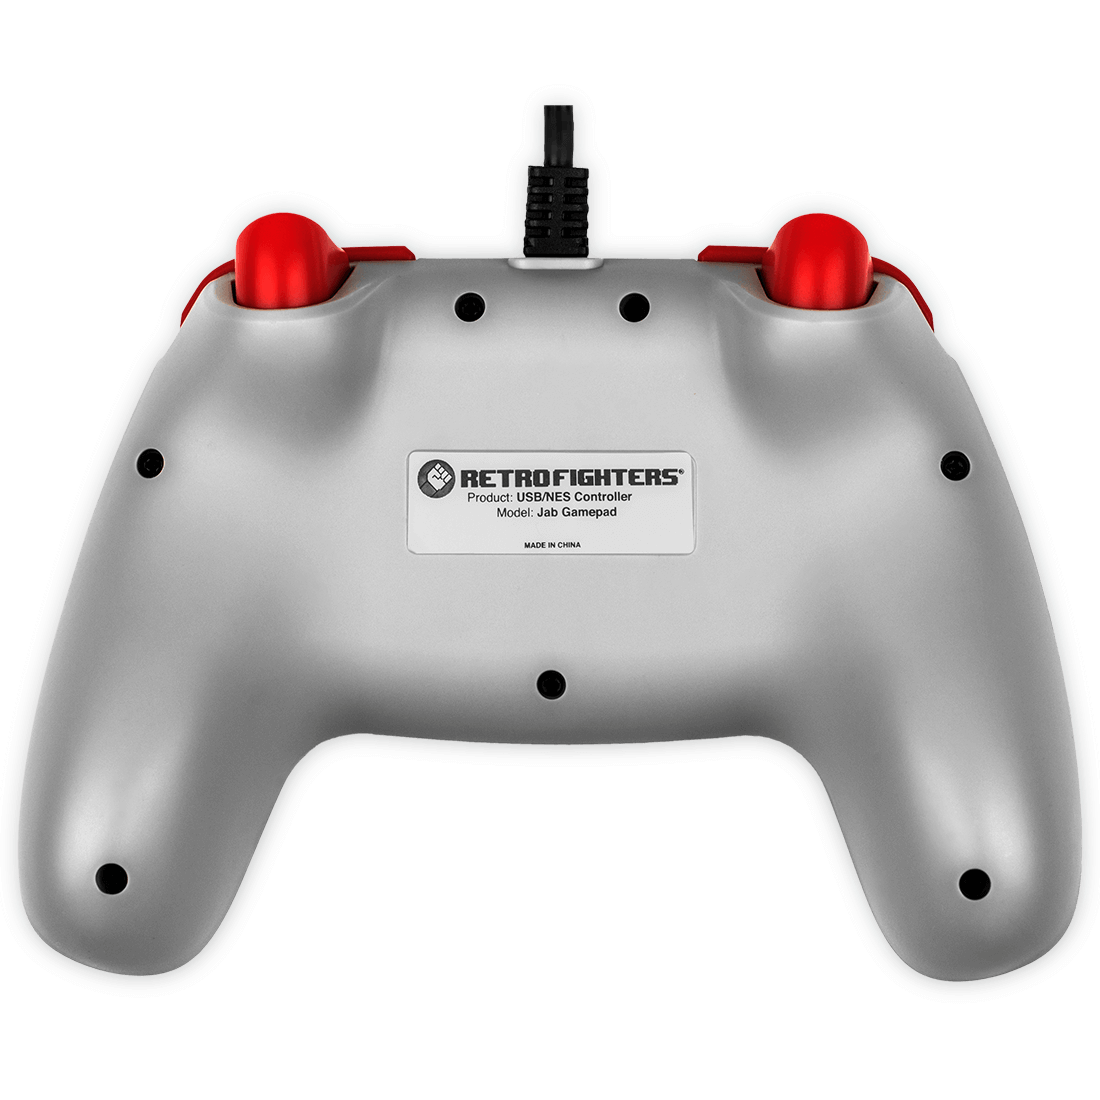 jab-gamepad-back-1100x1100.png